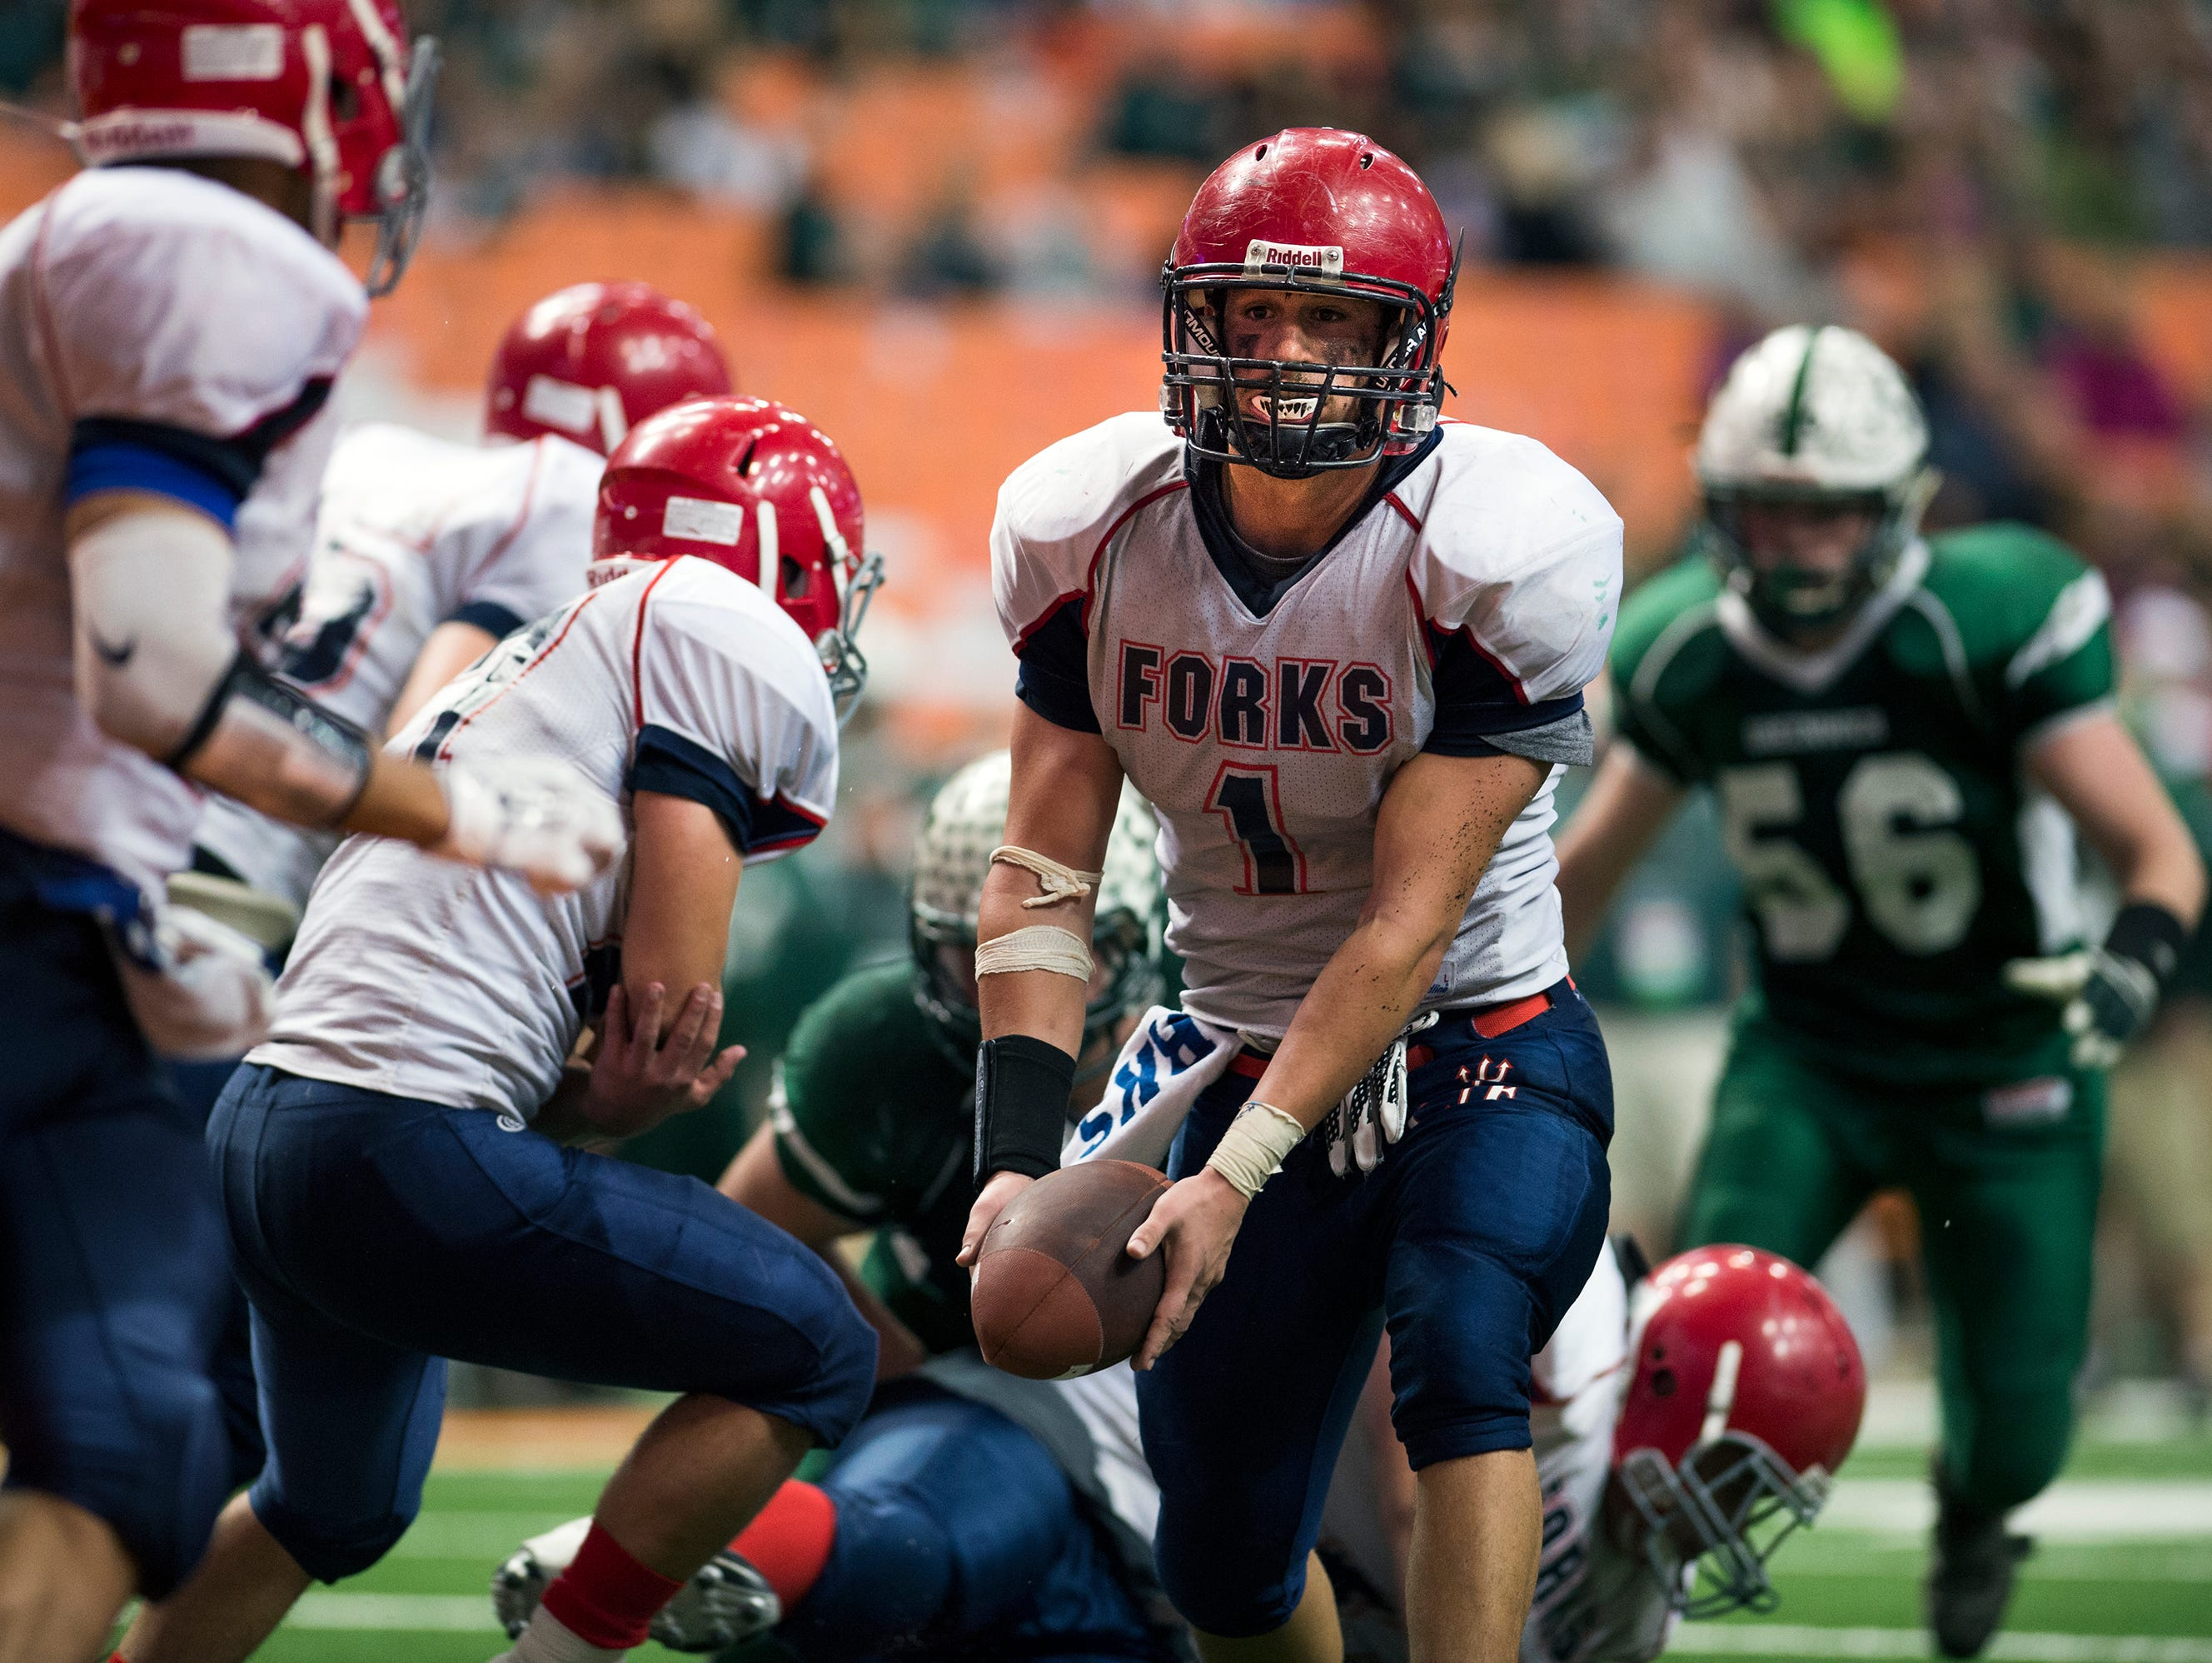 Chenango Forks quarterback Tony Silvanic pitches the ball during the Blue Devil's 42-7 win over Greenwich to win their third straight Class C state championship on Friday, Nov. 27, 2015 in Syracuse.